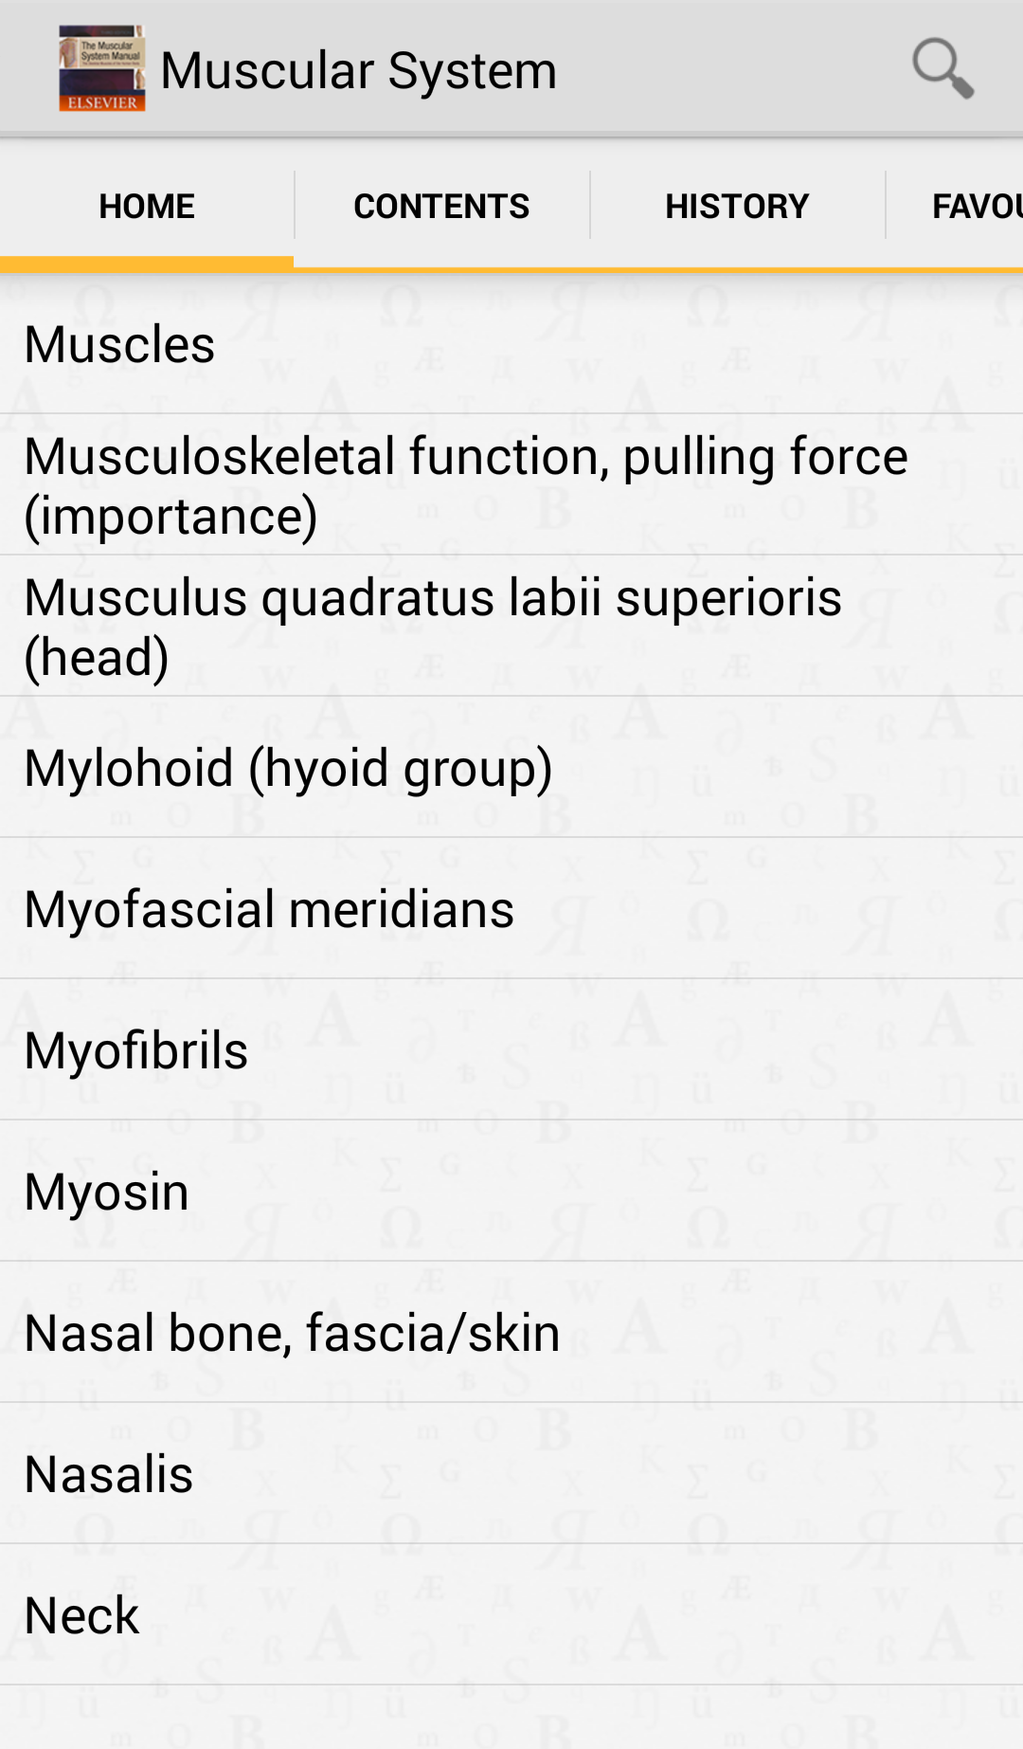 The Muscular System Manual: The Skeletal Muscles of the Human Body Screenshot 6